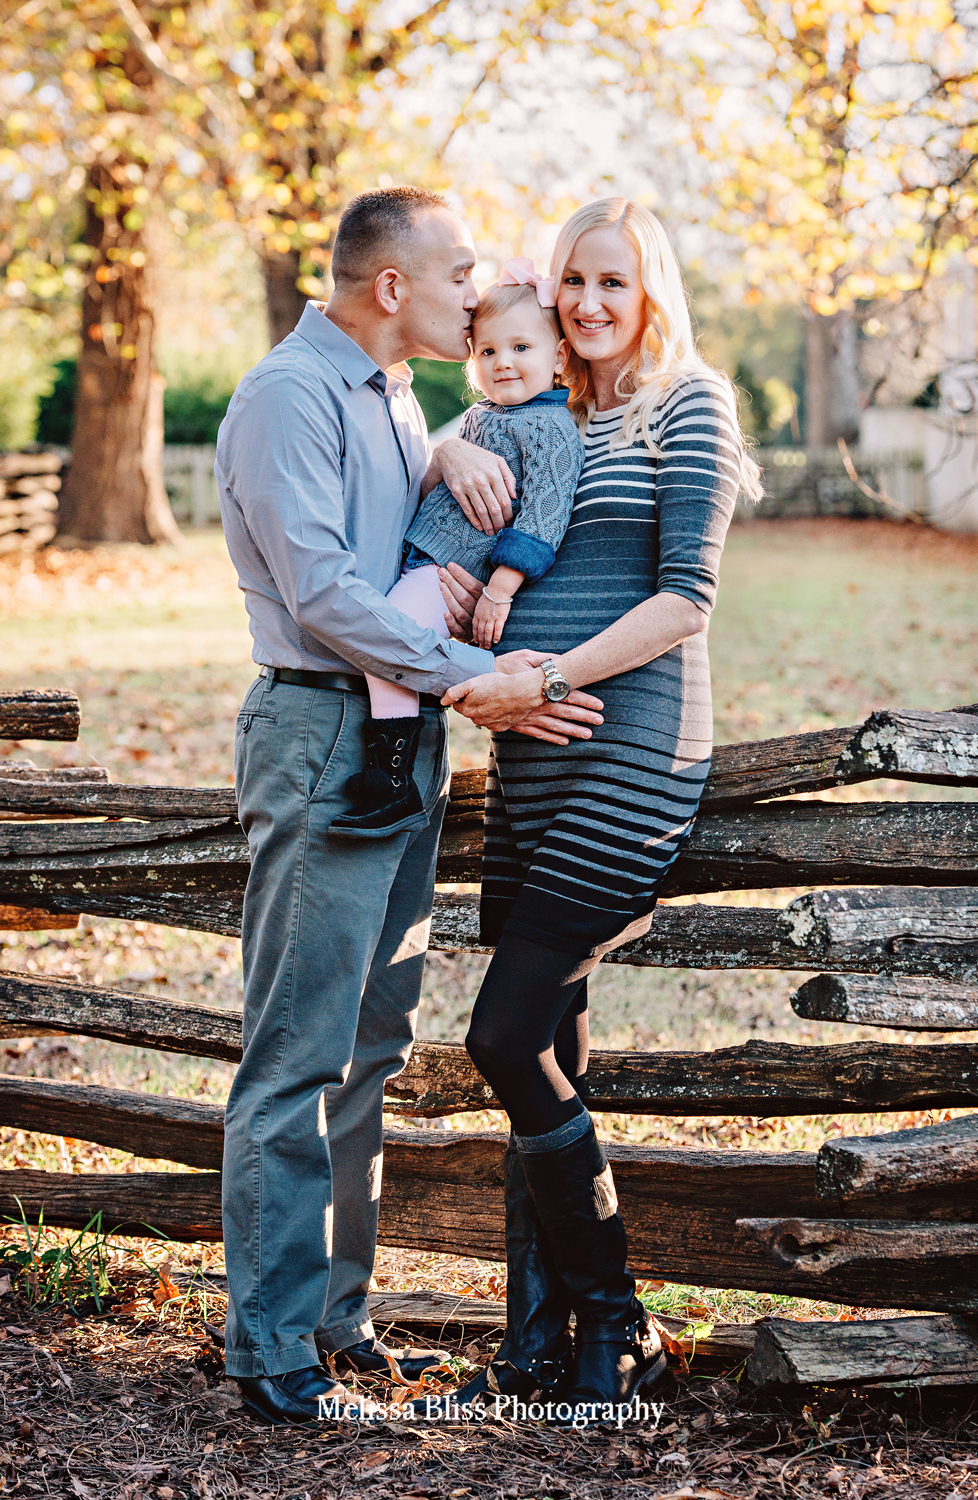 fall-family-picutres-holiday-photos-family-photography-norfolk-virginia-beach-chespeake-williamsburg-photographer-Melissa-Bliss-PHotography.jpg